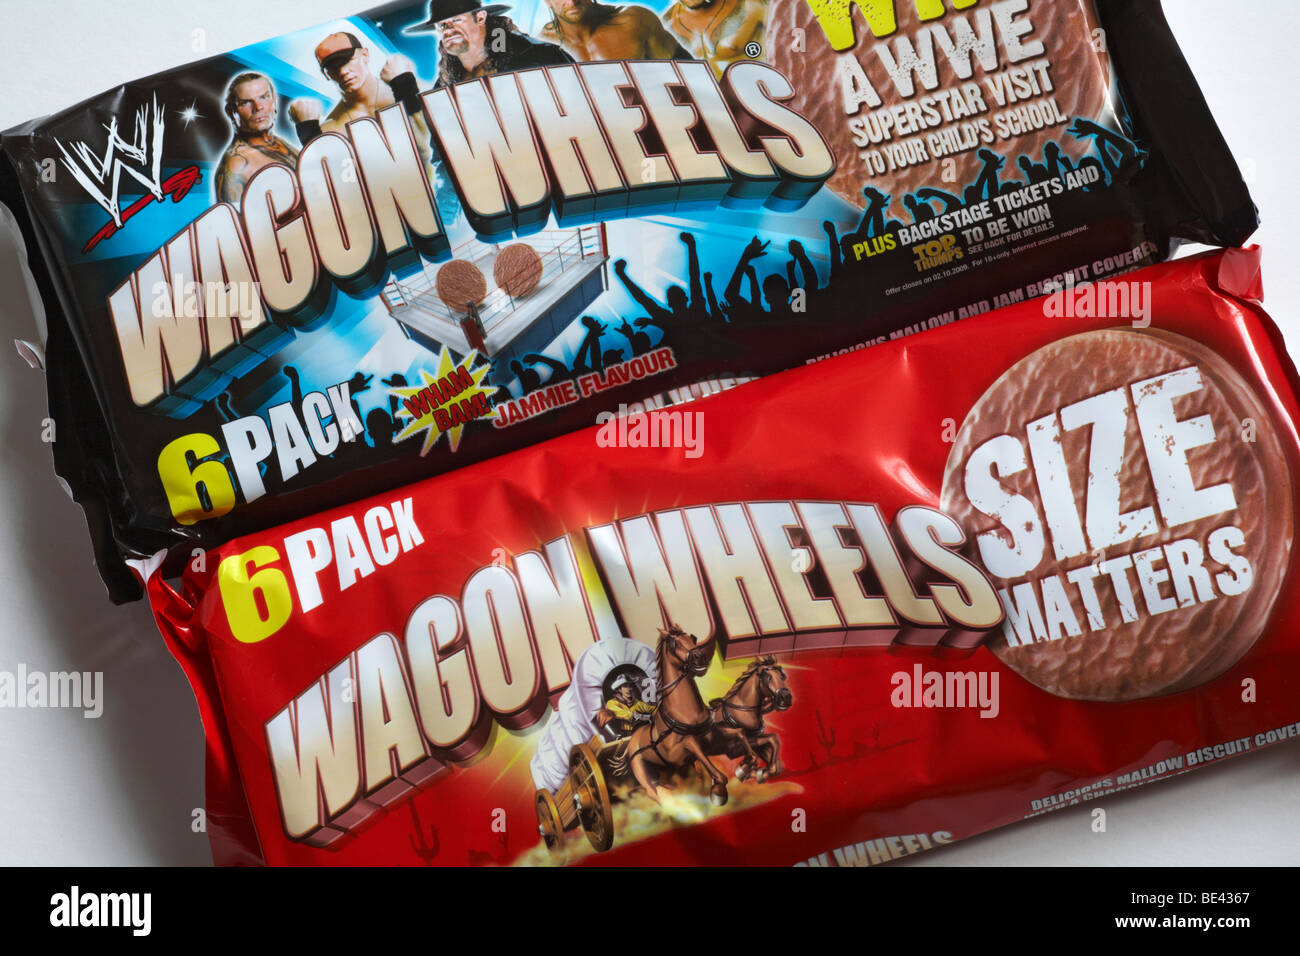 Wagon Wheels biscuits biscuit - 6 pack packets of original plain and jammie flavour Wagon Wheels biscuits Stock Photo